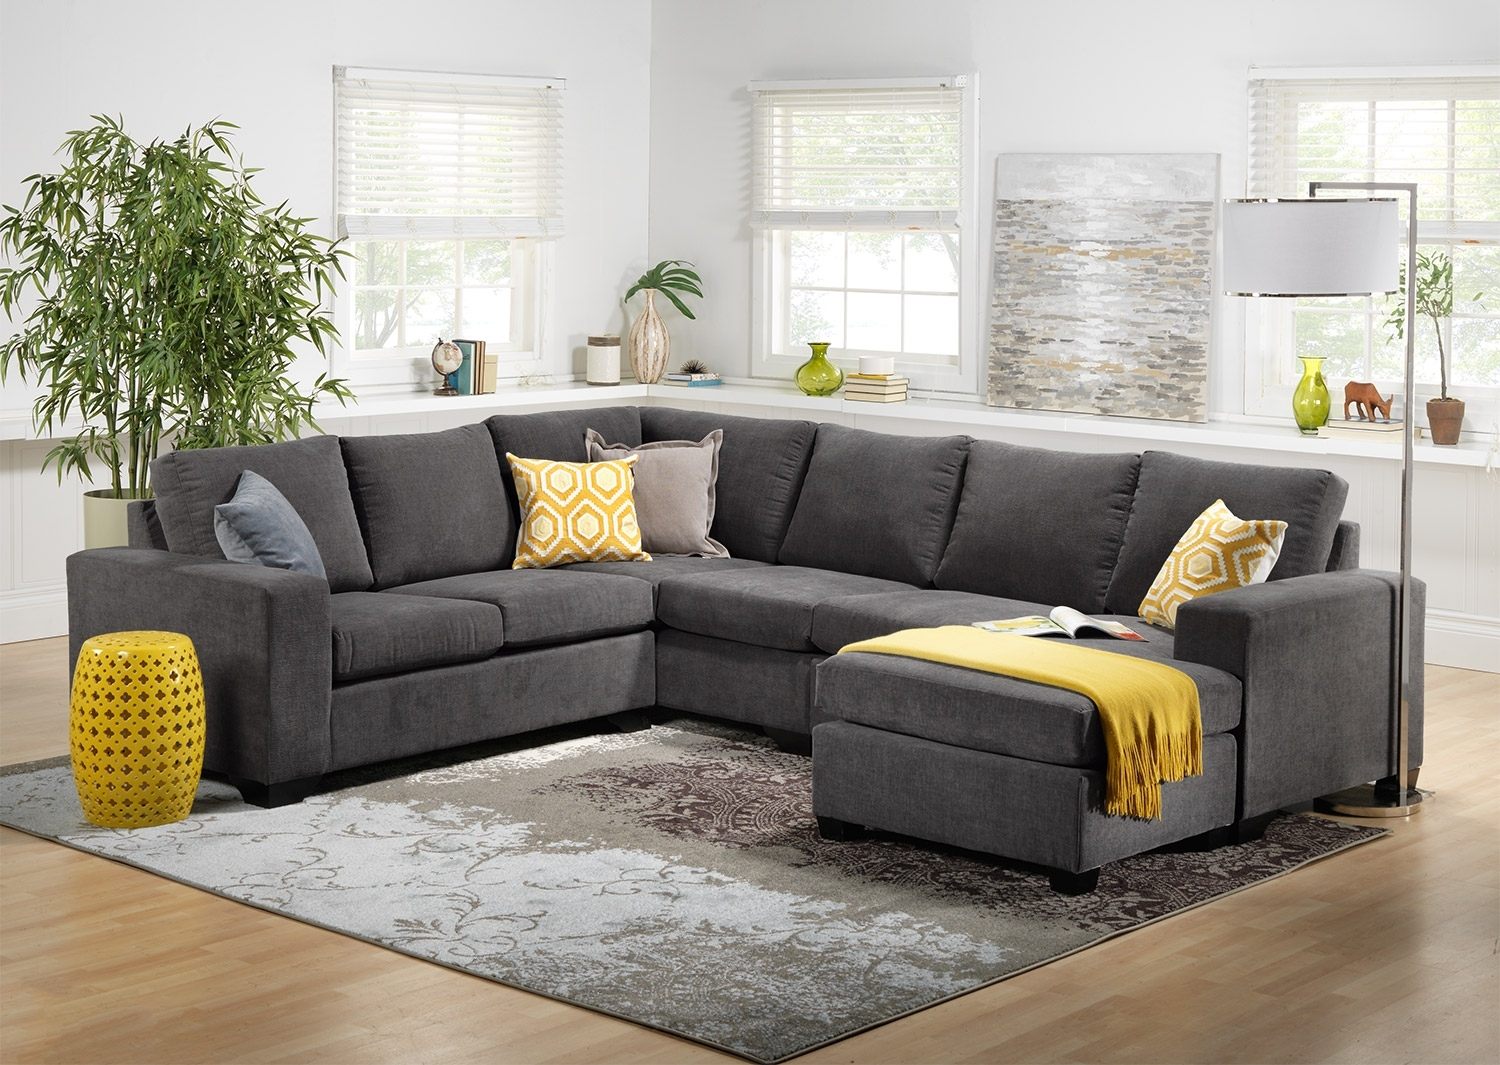 Danielle 3-Piece Sectional With Right-Facing Corner Wedge - Grey inside Scarborough Sectional Sofas (Image 3 of 10)